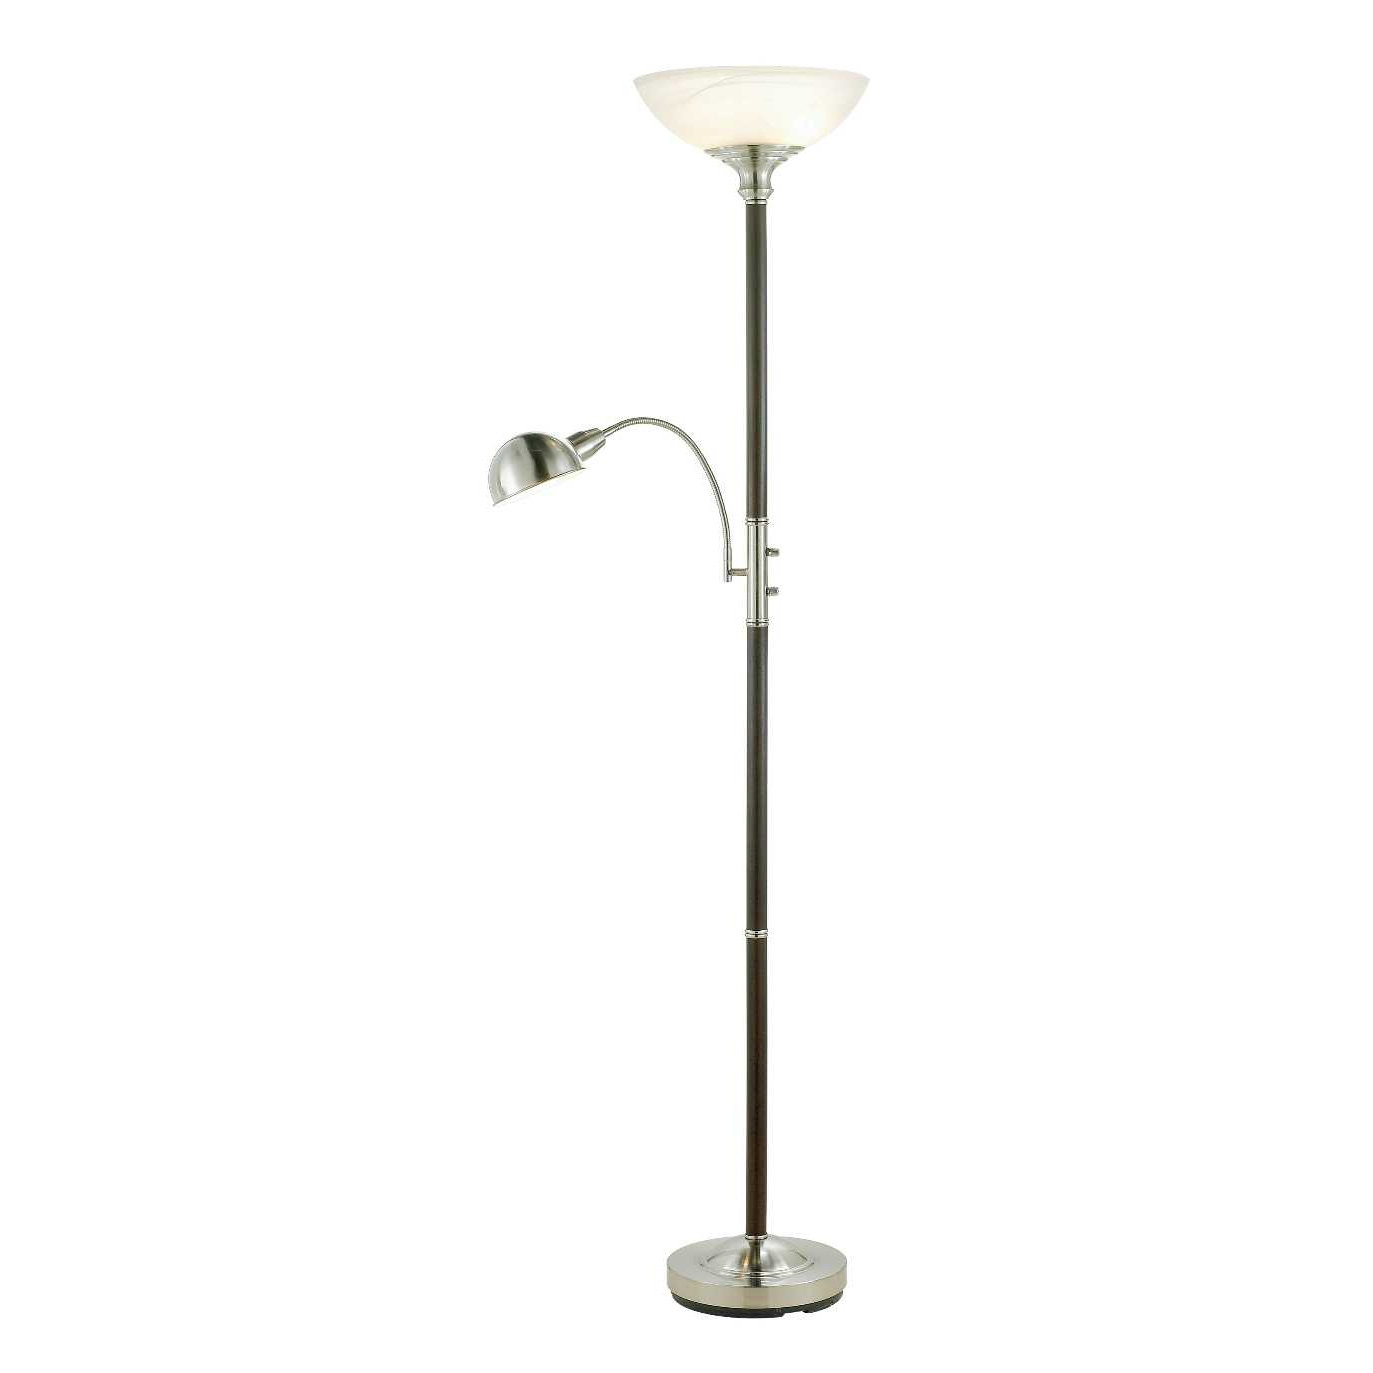 Lexington Floor Lamp By Adesso Corp 4052 15